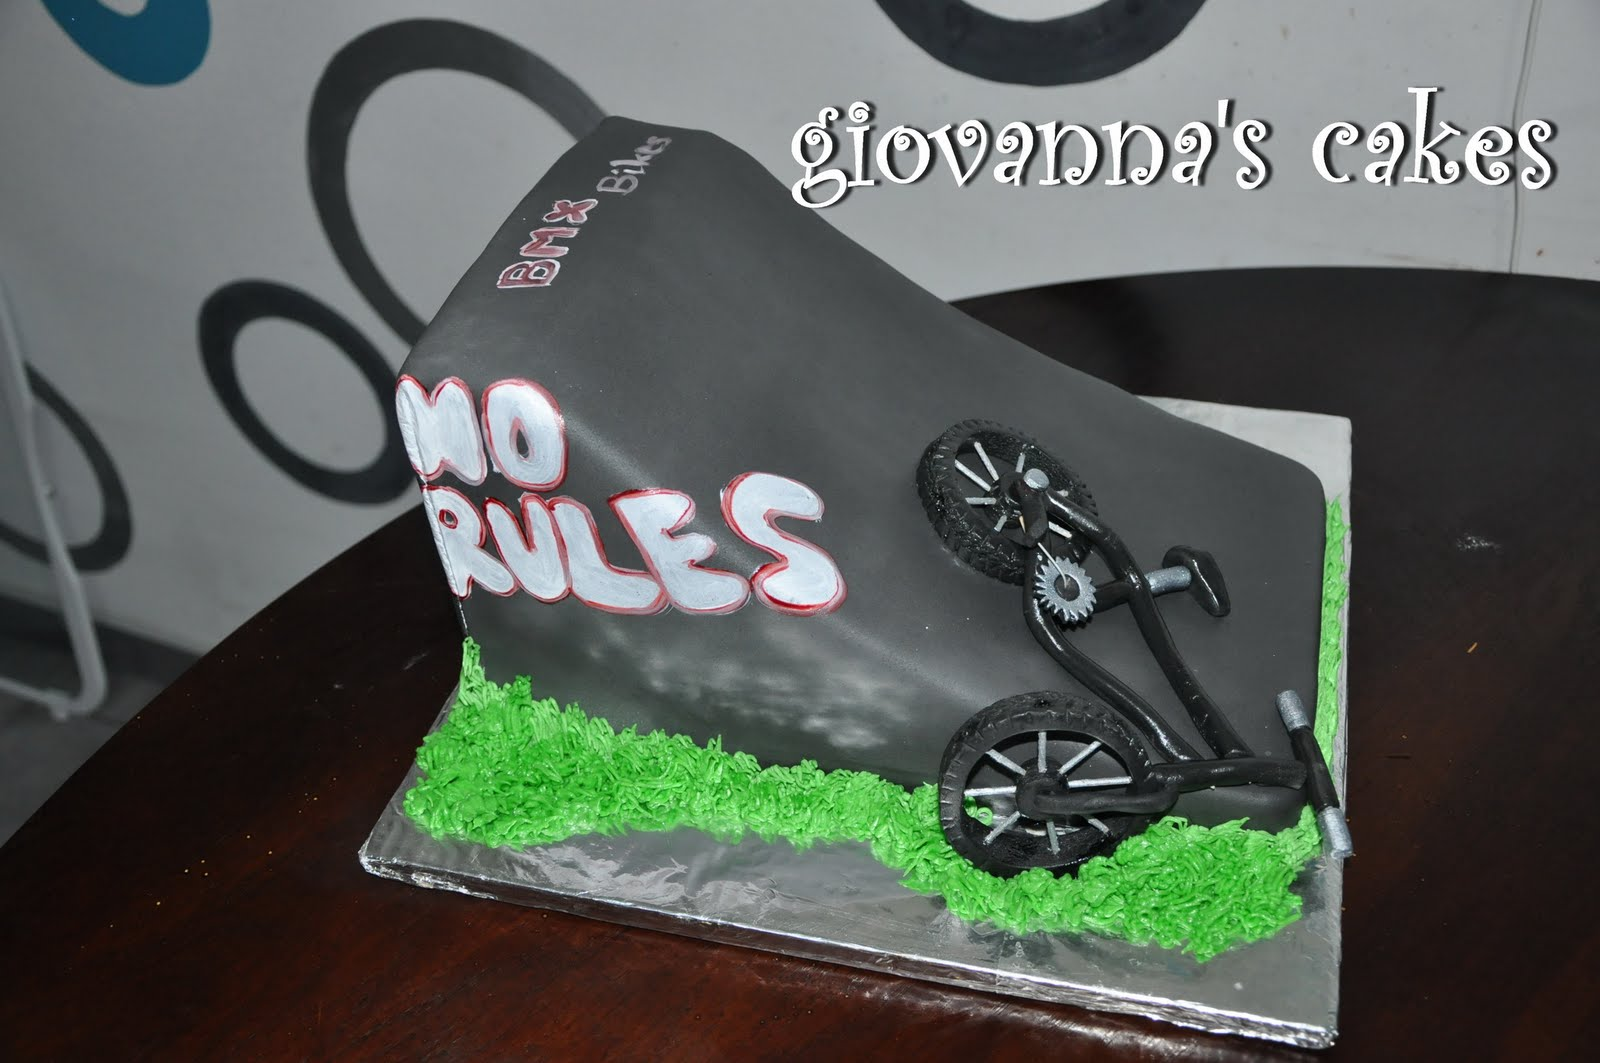 Giovannas Cakes BMX Bike Ramp